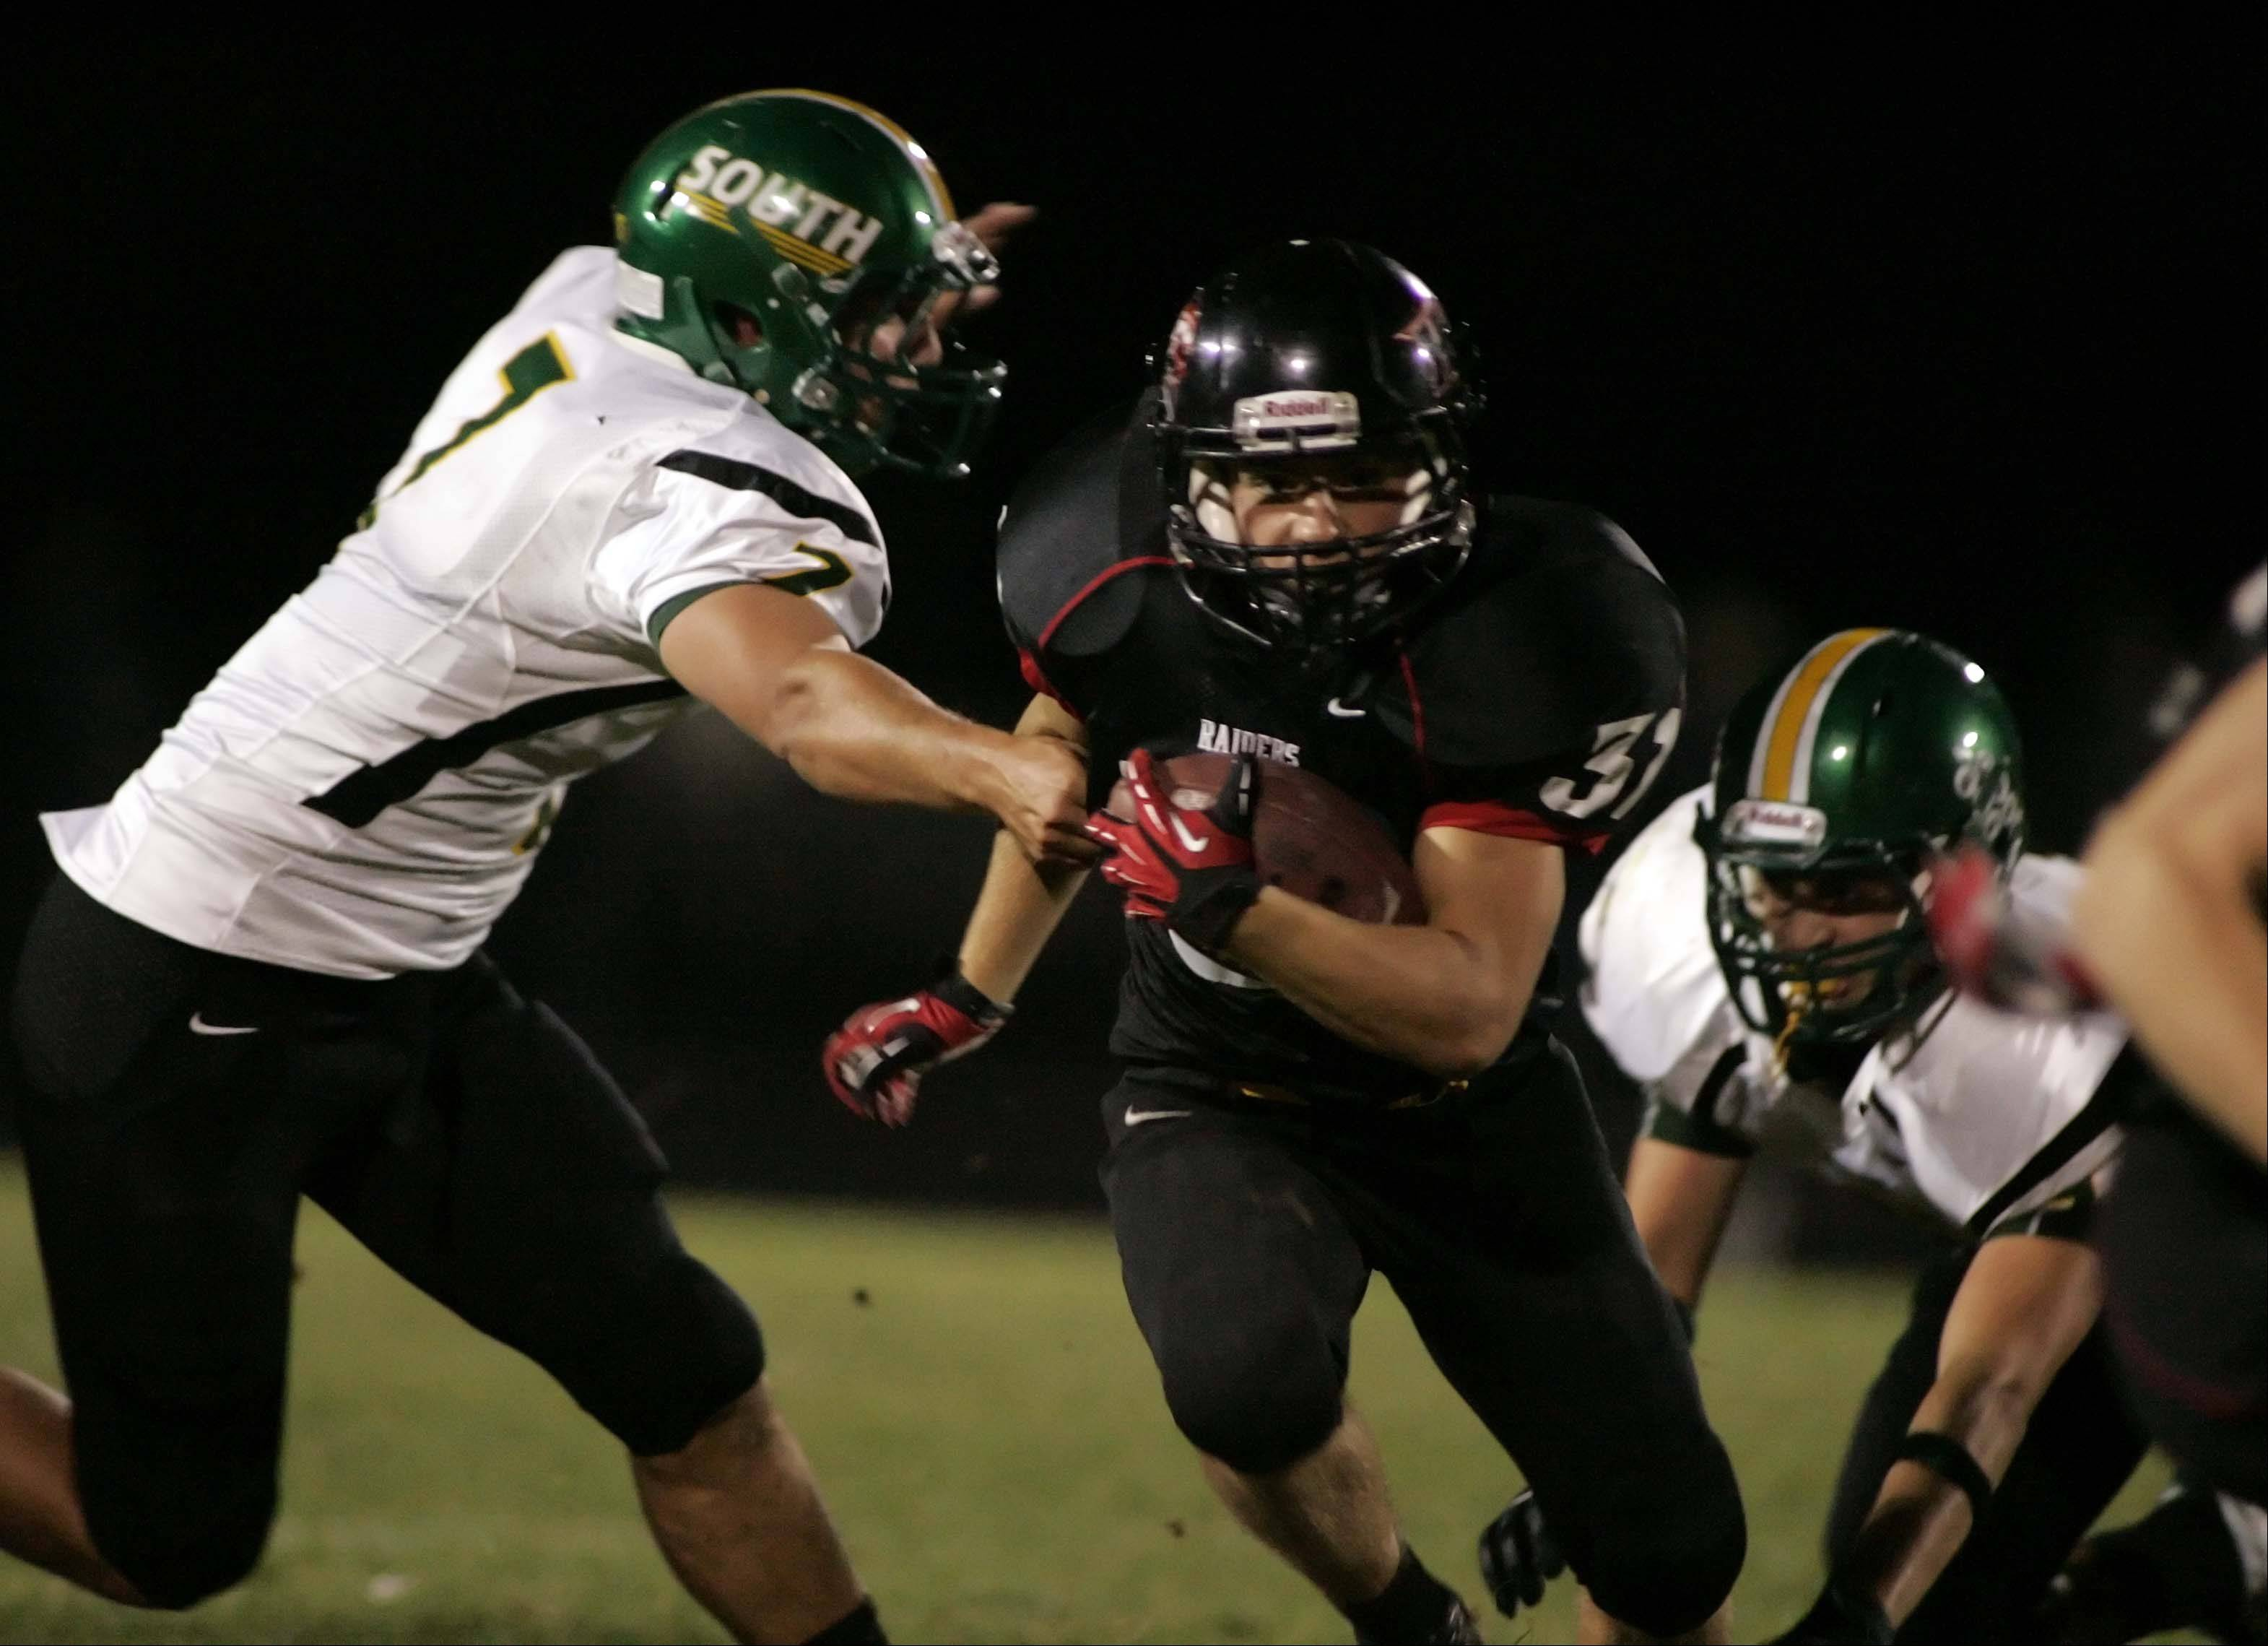 Week Four - Images from the Crystal Lake South vs. Huntley football game Friday, September 14, 2012.